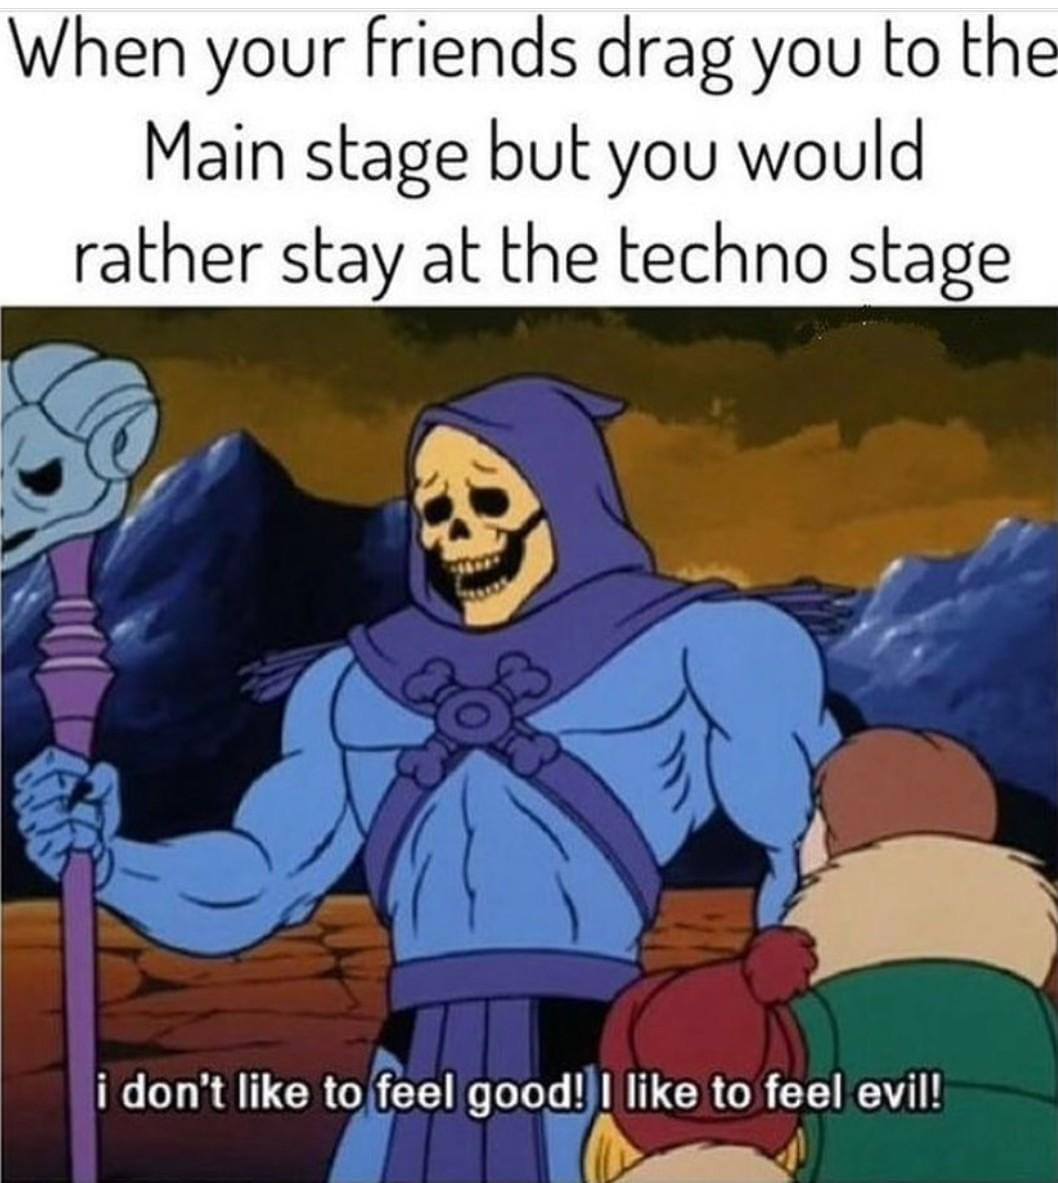 when your friends drag you to the main stage but you would rather stay at the techno stage, i don't like to feel good, i like to feel evil